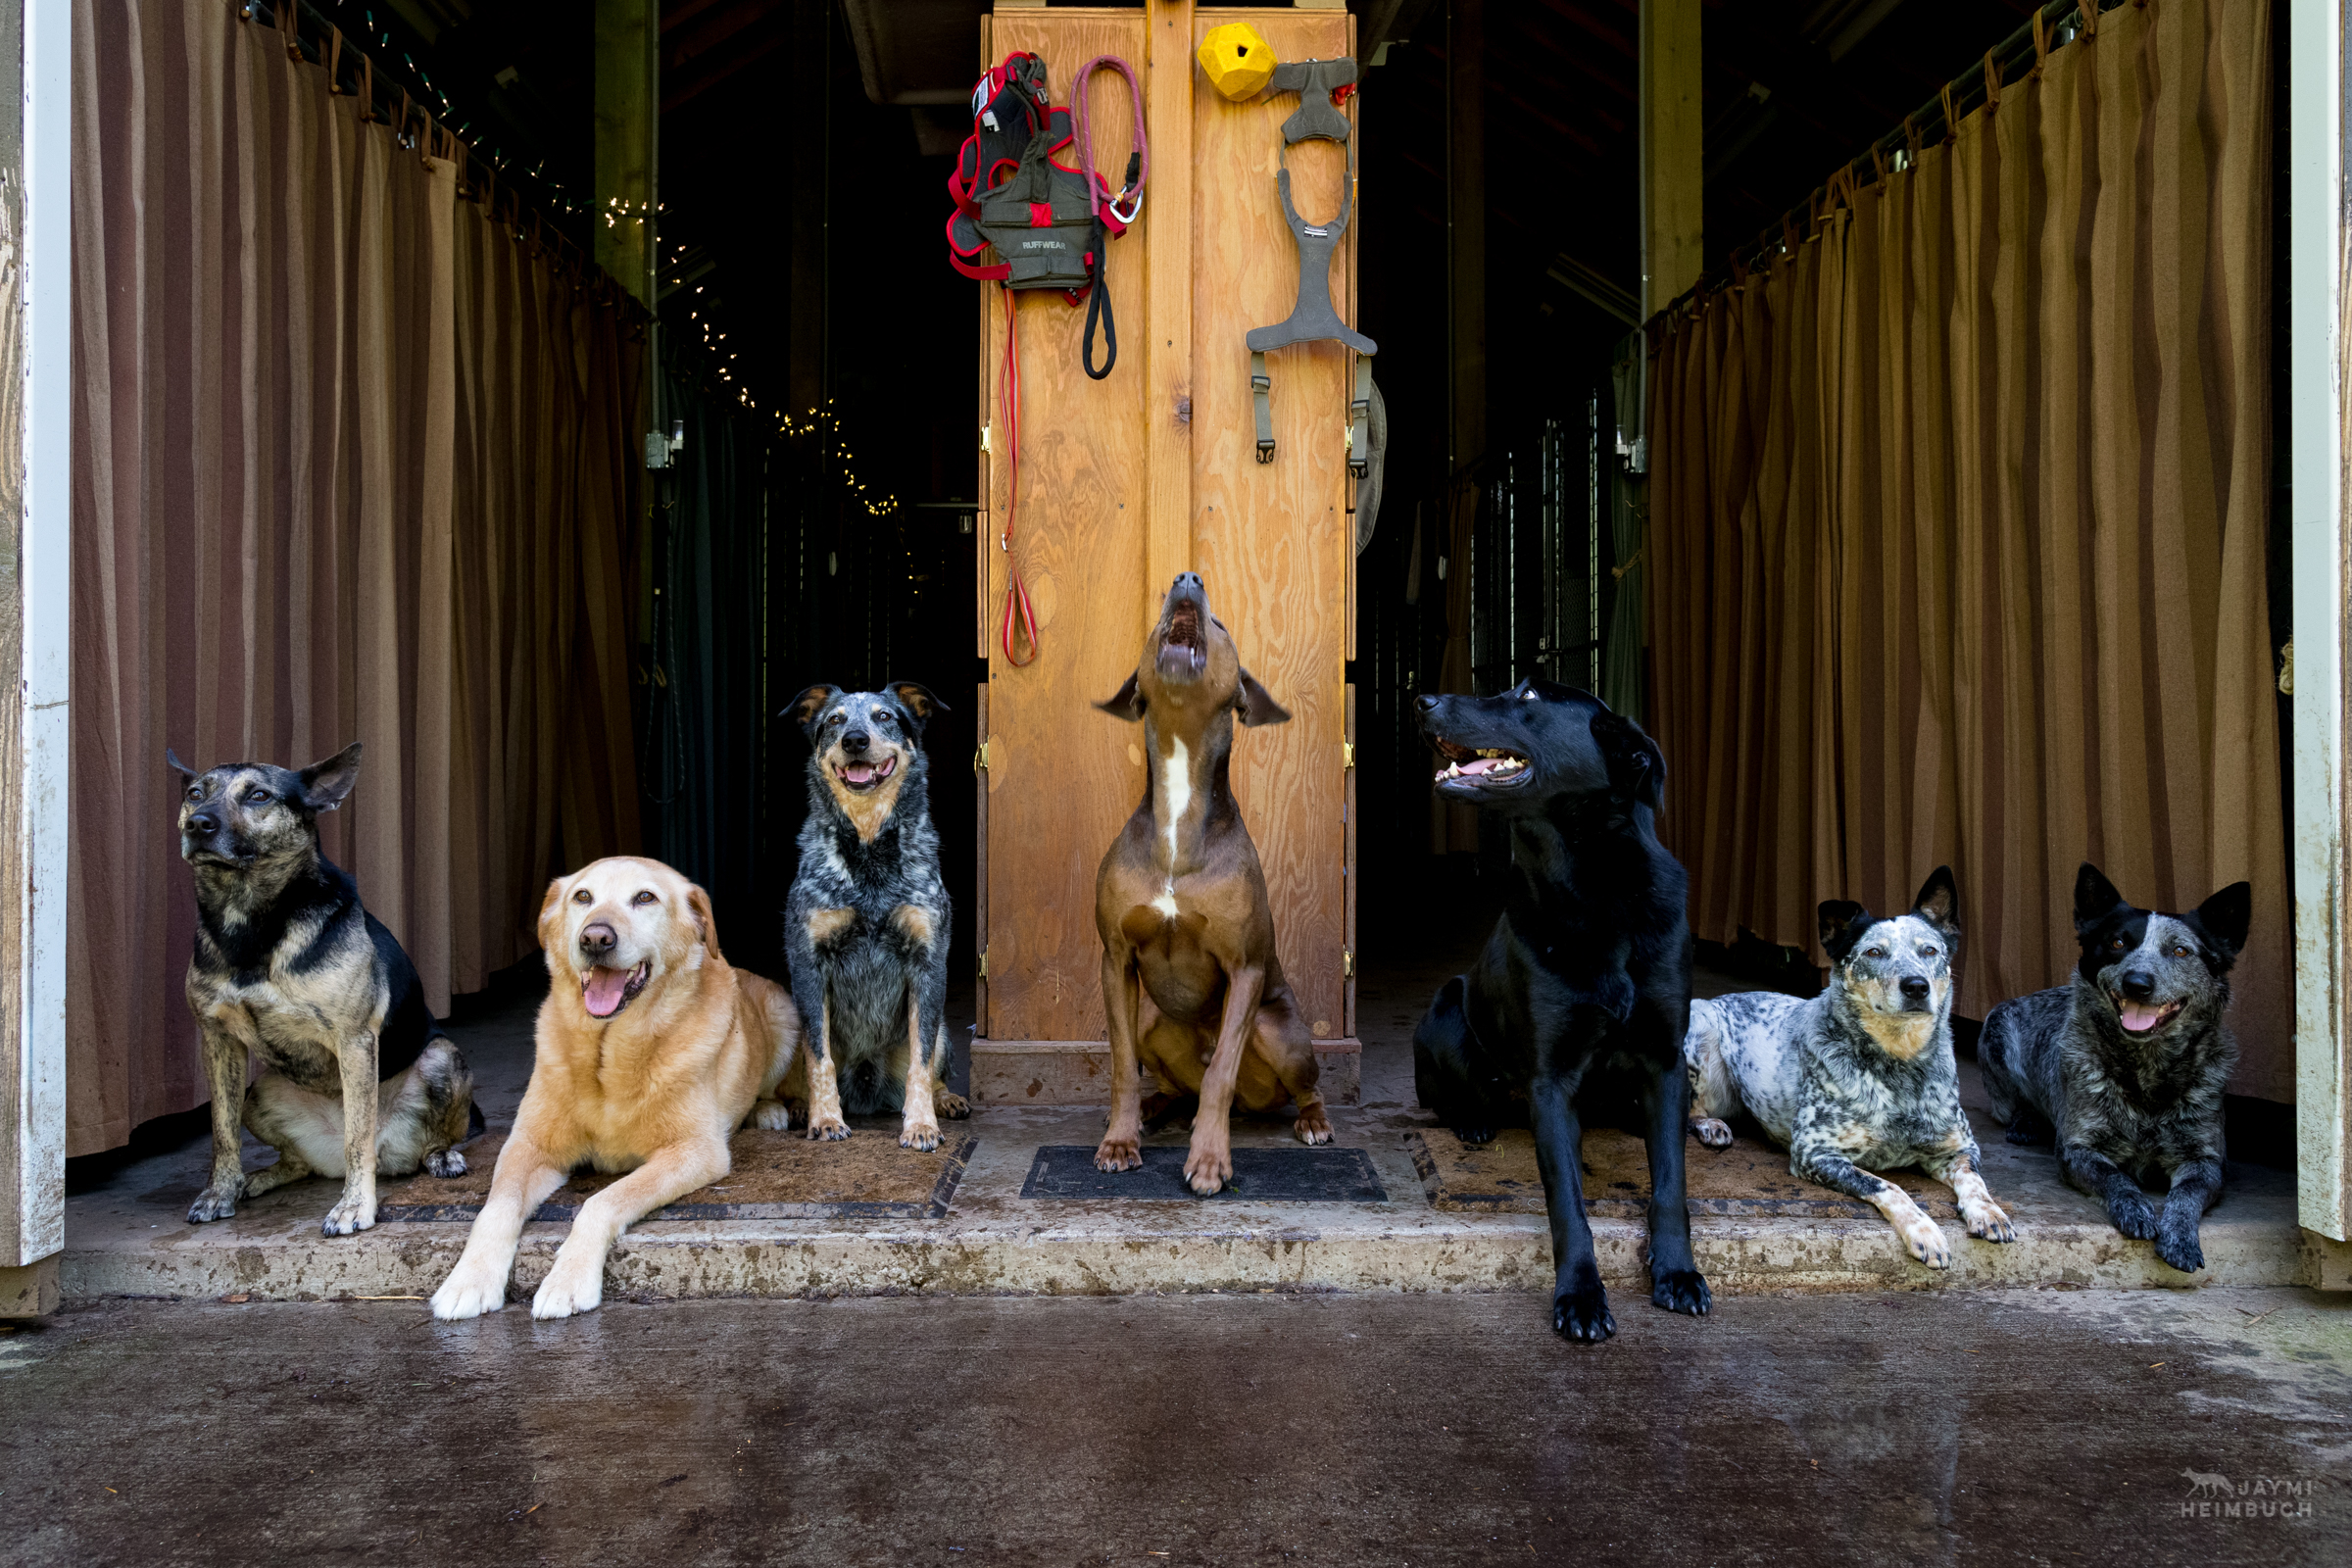 It's not common that Conservation Canine dogs hang out in free time together - especially not in an organized fashion like this! - but instead socialization with one another depends on personalities and balanced interactions.